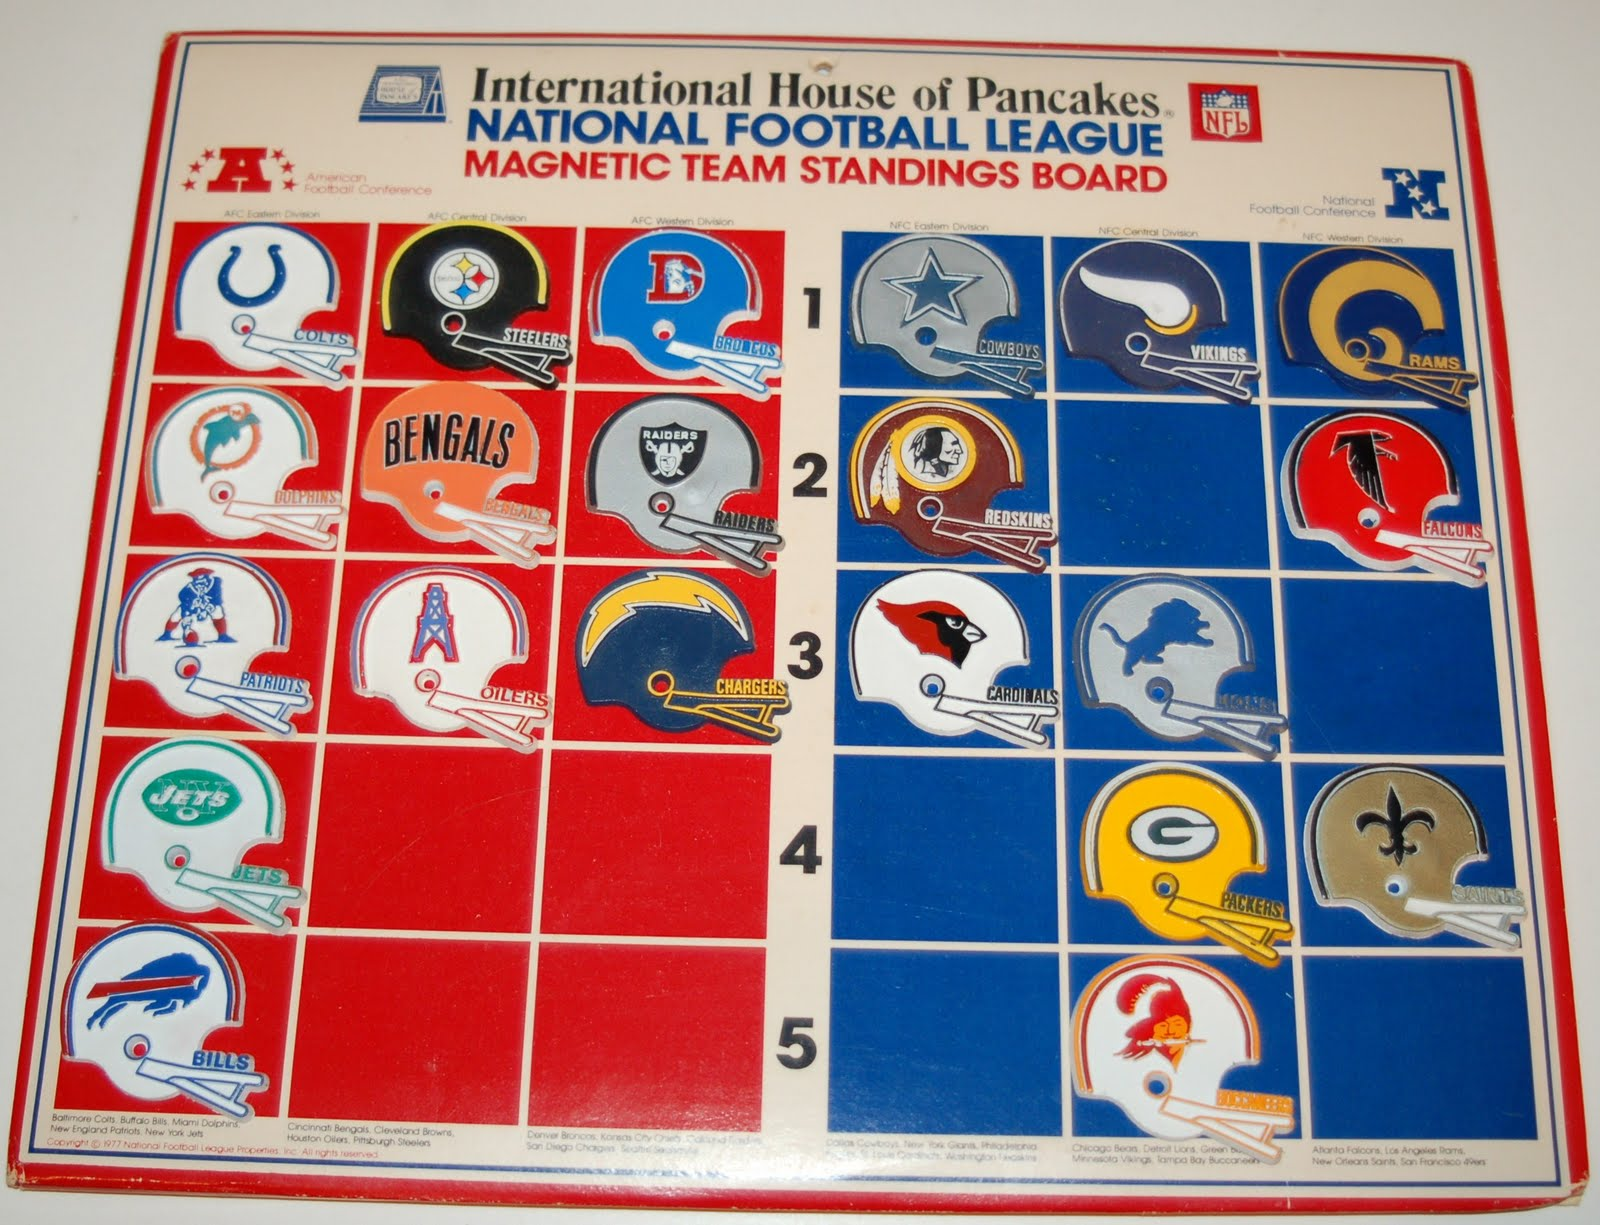 the fleer sticker project ihop nfl football helmet magnets and